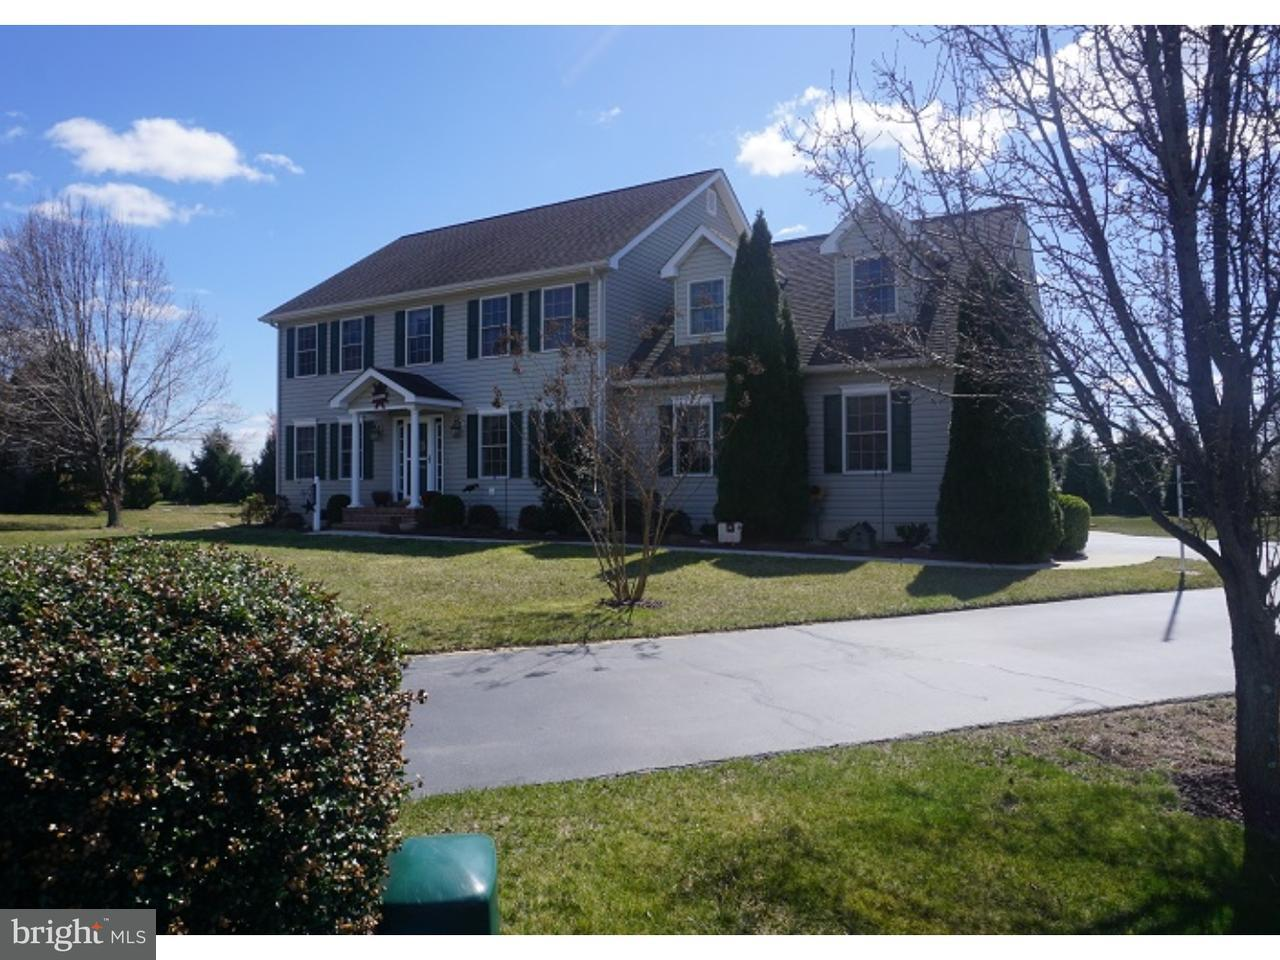 Single Family Home for Sale at 102 BYRNEBERRY Court Magnolia, Delaware 19962 United States